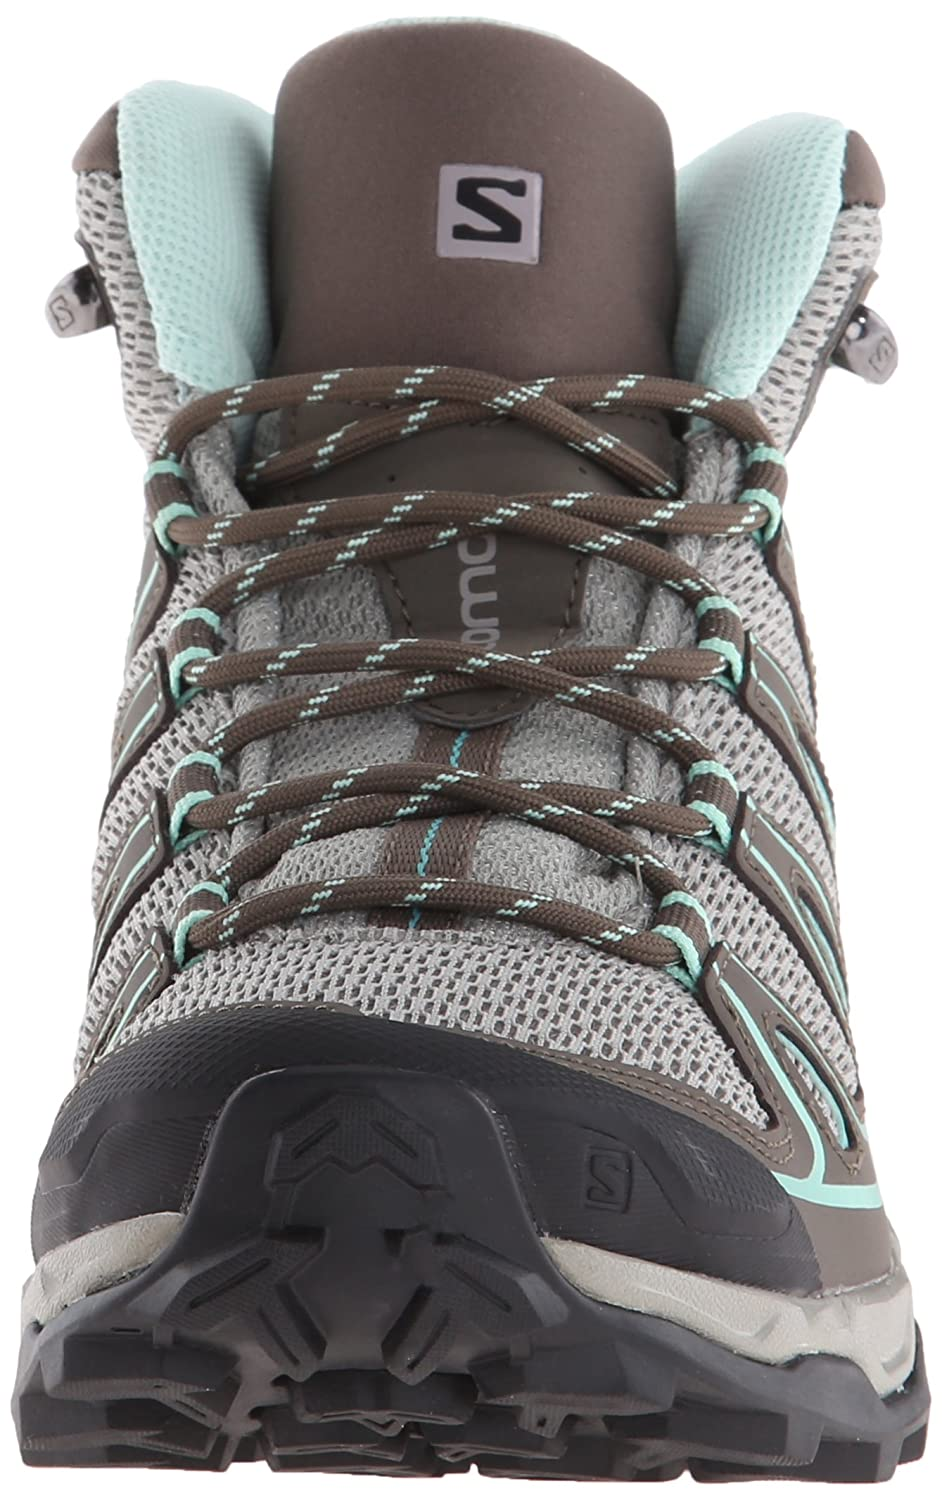 Salomon Women's X Ultra Mid Aero W Hiking Boot B00ZLN4KZW 5 B(M) US|Titanium/Swamp/Opaline Blue